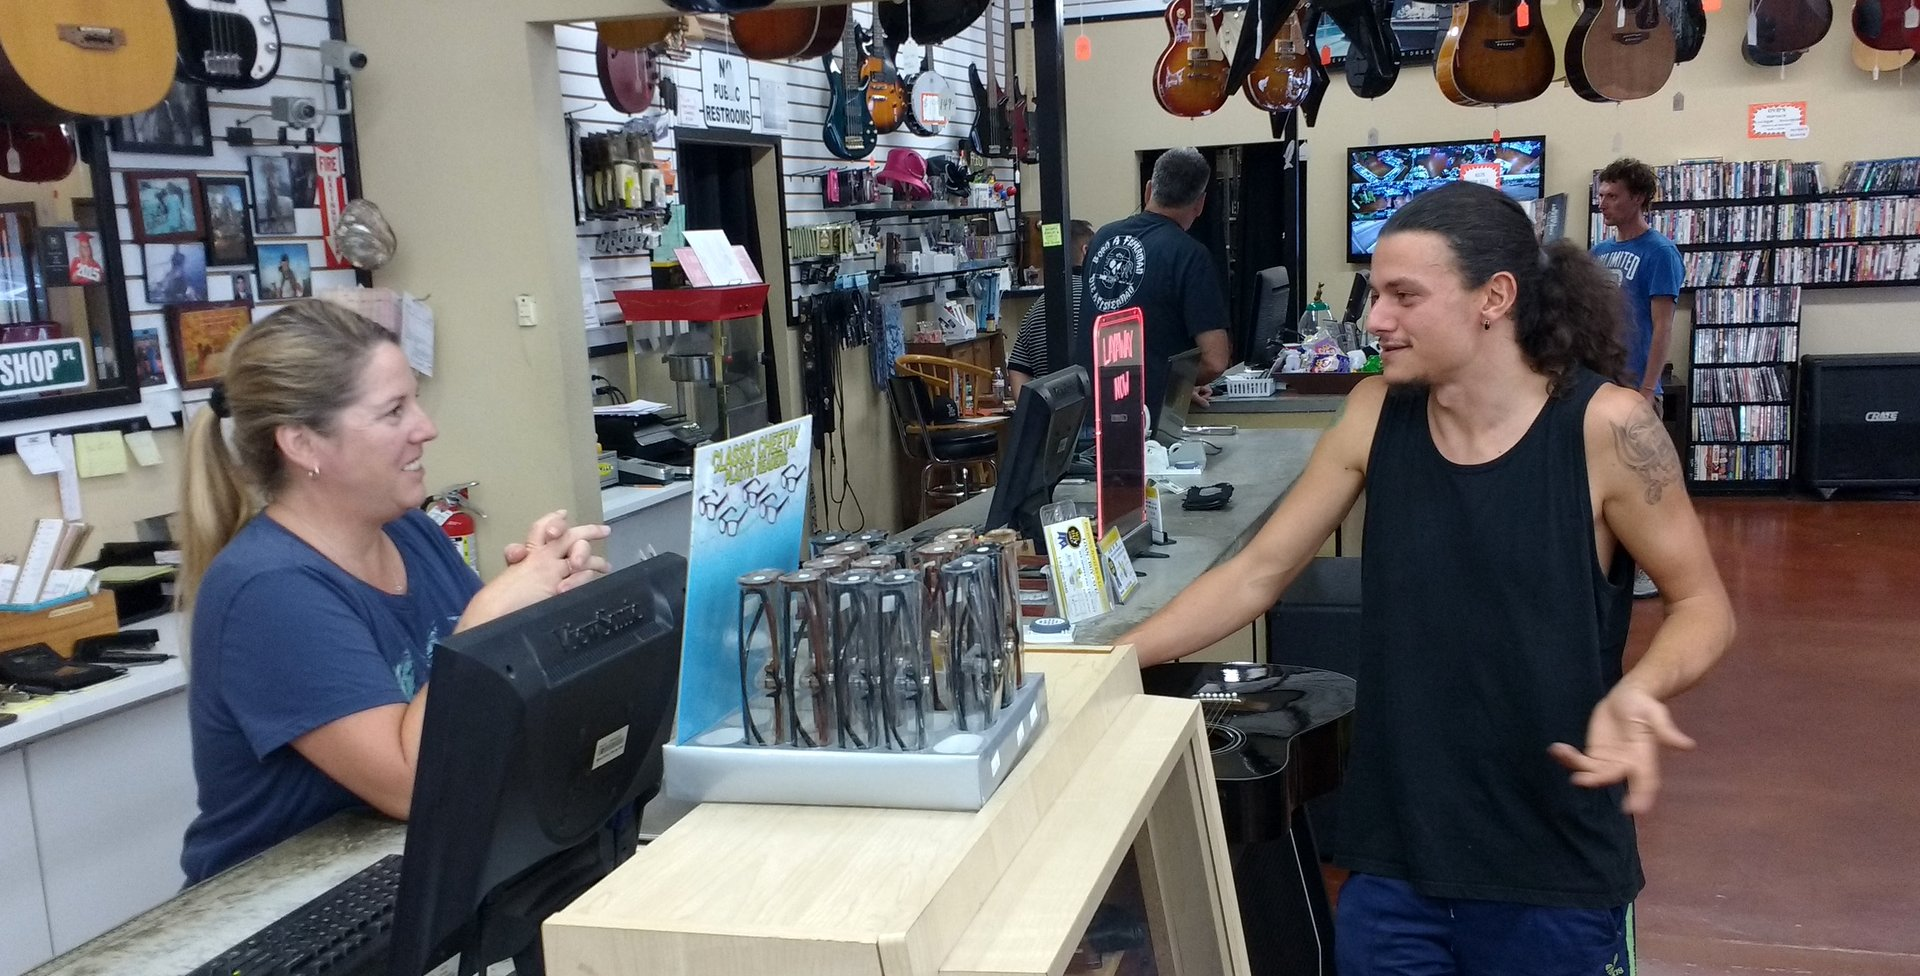 Fabio chatting with one of the people at the Pawn Shop